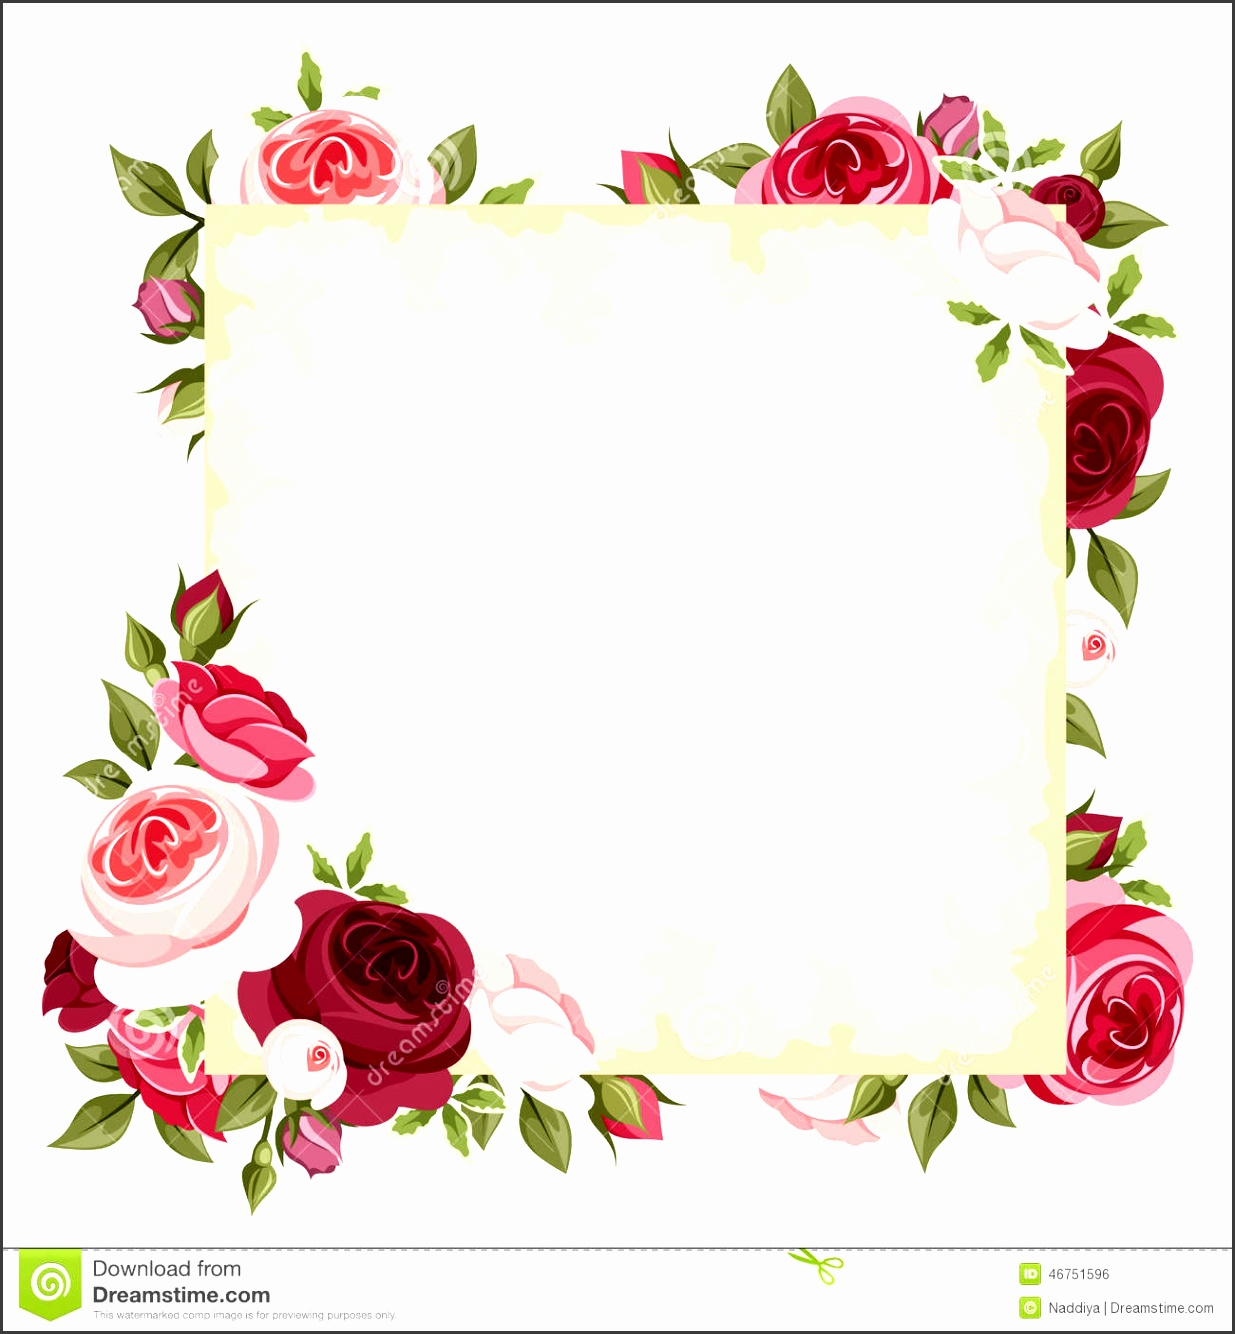 7 Flower Pot Writing Template - SampleTemplatess ...